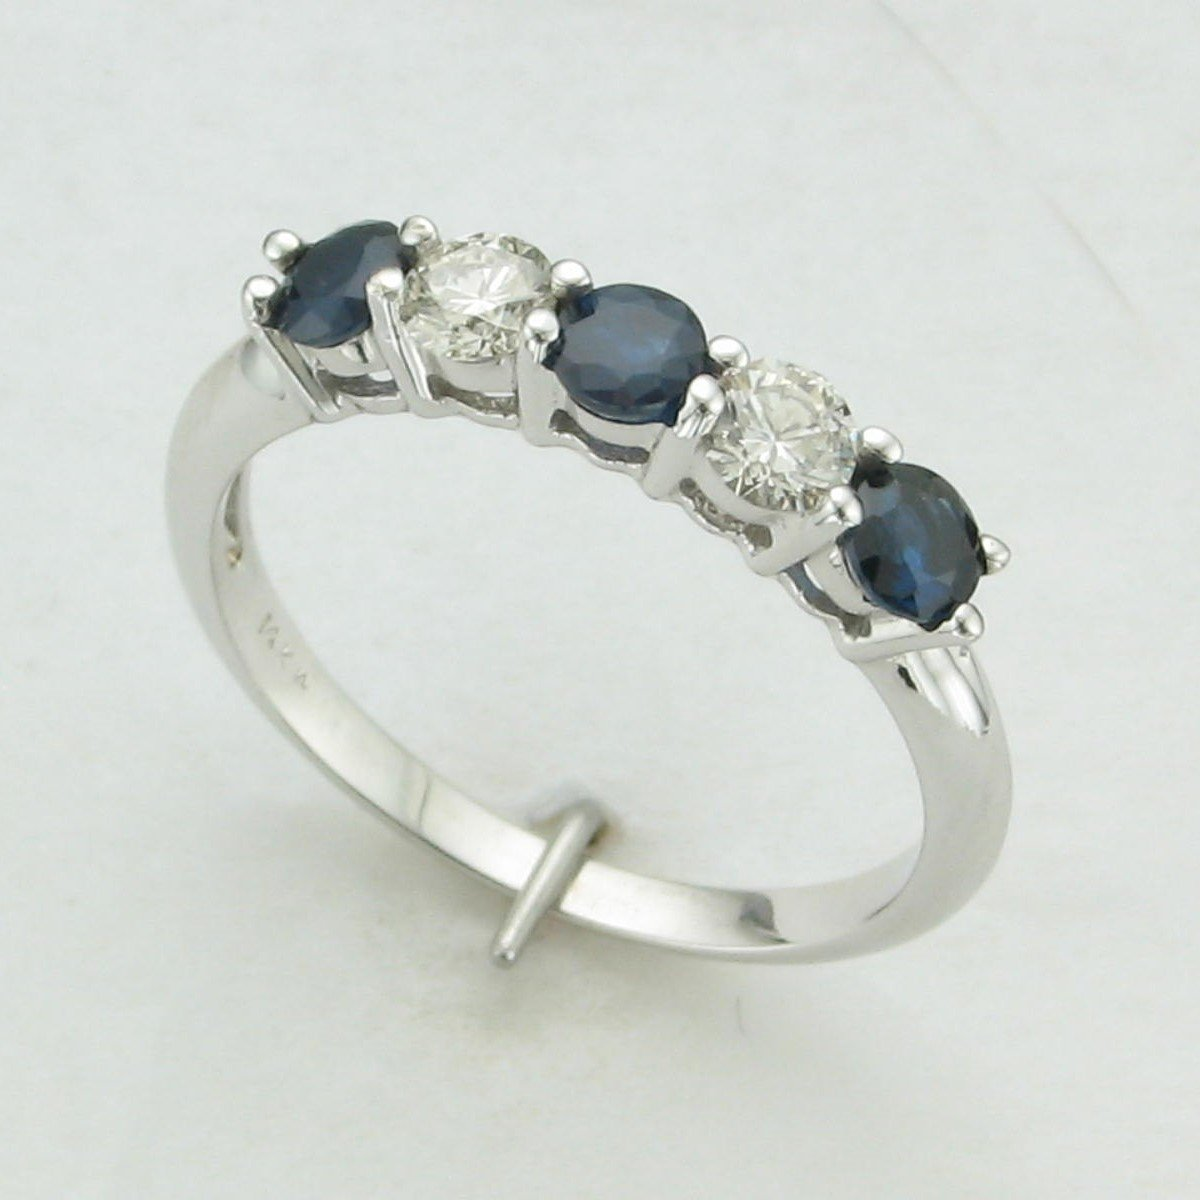 14K White Gold Sapphire and Diamond Five-Stone Ring